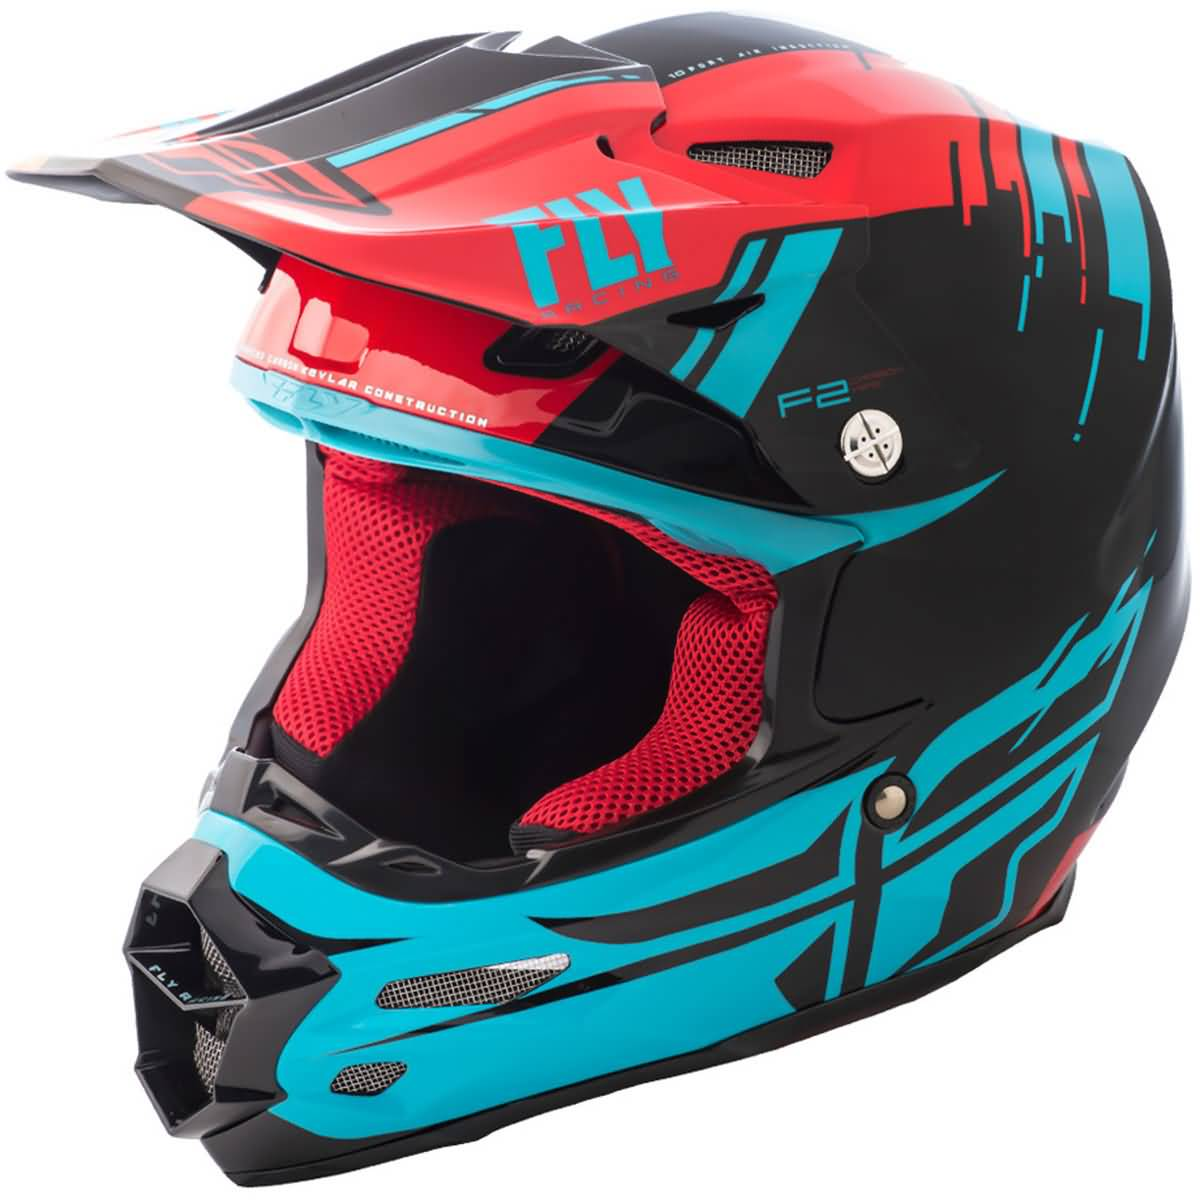 Fly Racing F2 Carbon Forge MIPS Adult Snow Helmets-73-4232